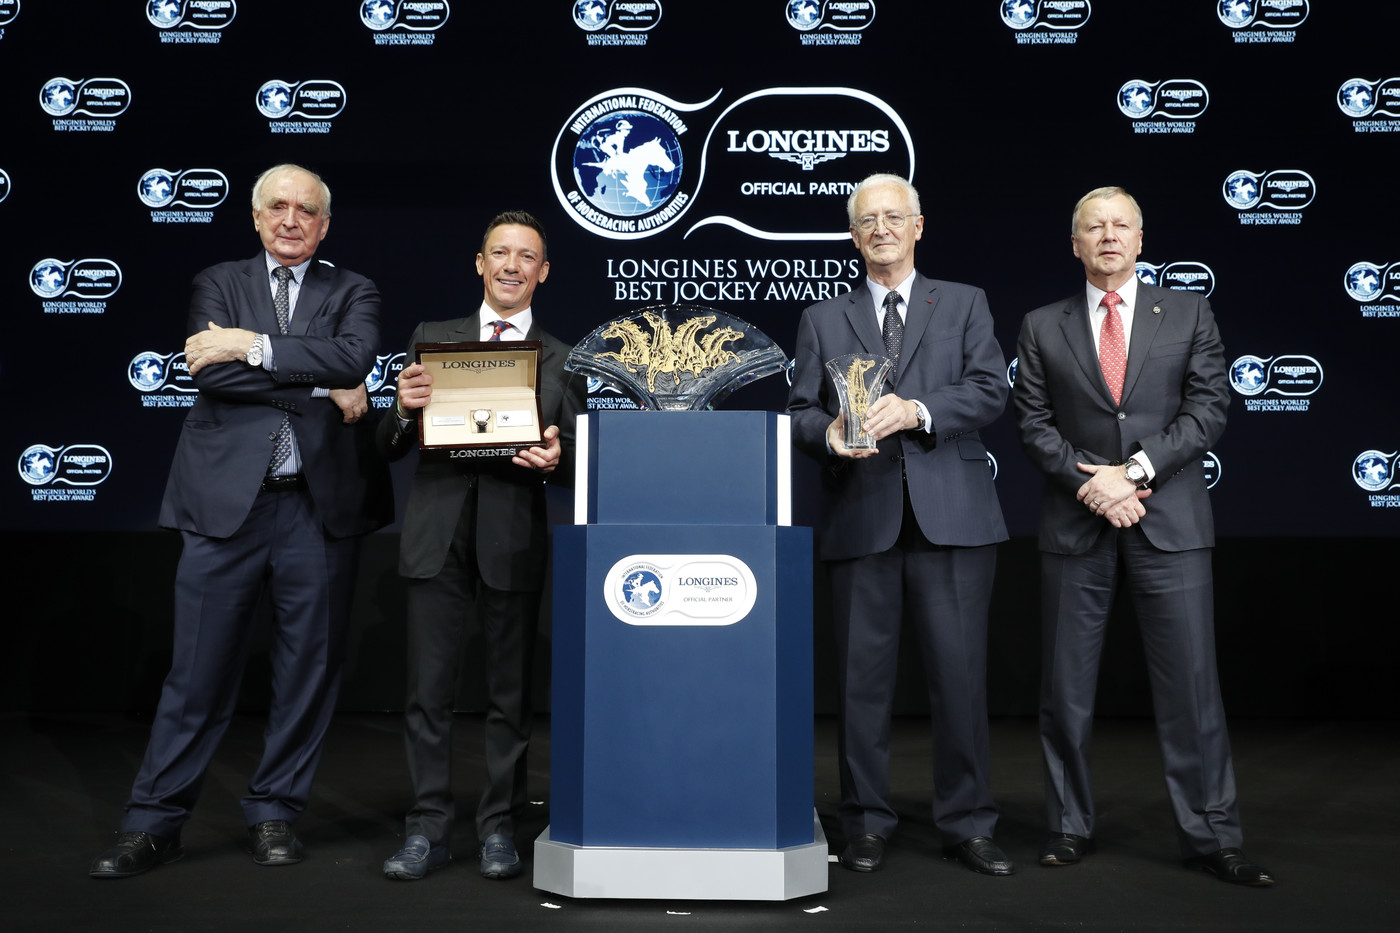 Longines Flat Racing Event: Frankie Dettori Crowned the 2018 Longines World's Best Jockey  4